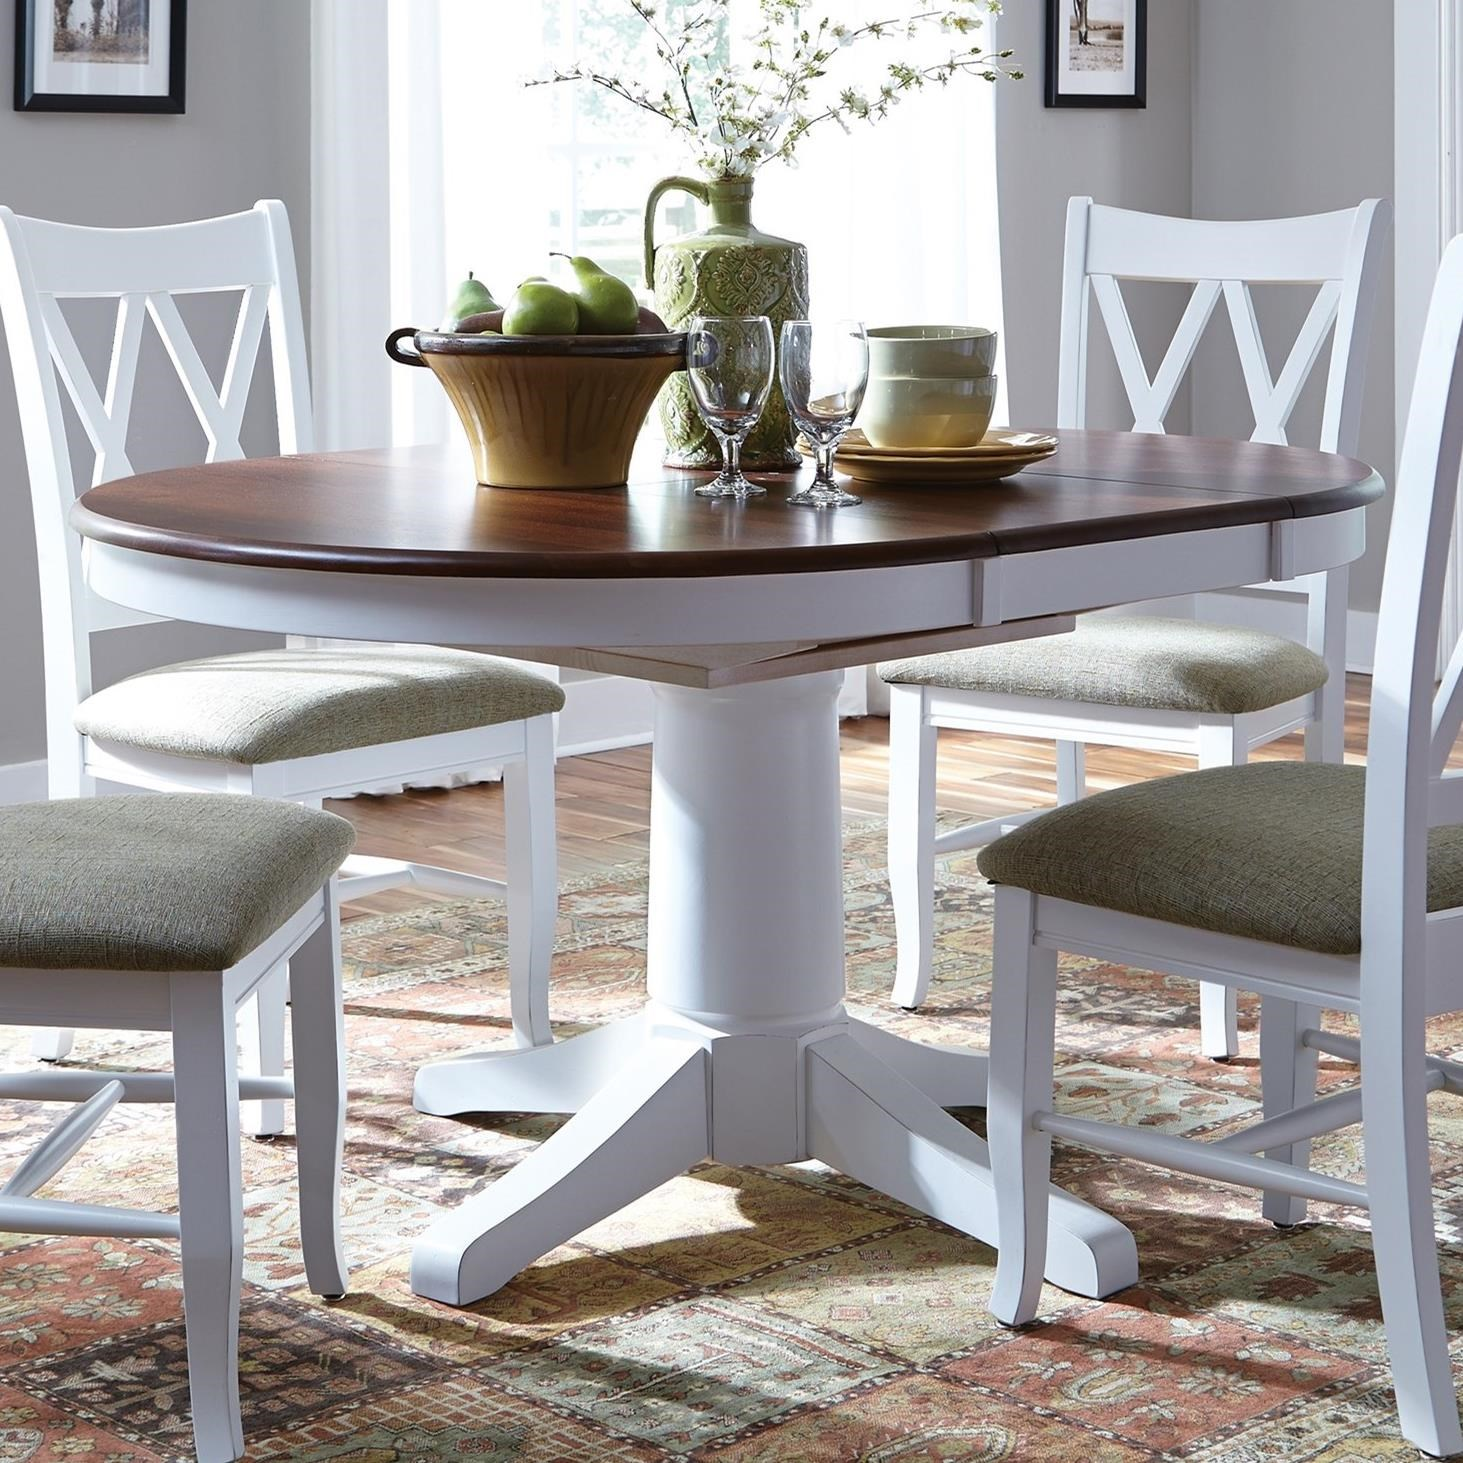 SELECT Dining Round Pedestal Dining Table by John Thomas at Johnny Janosik